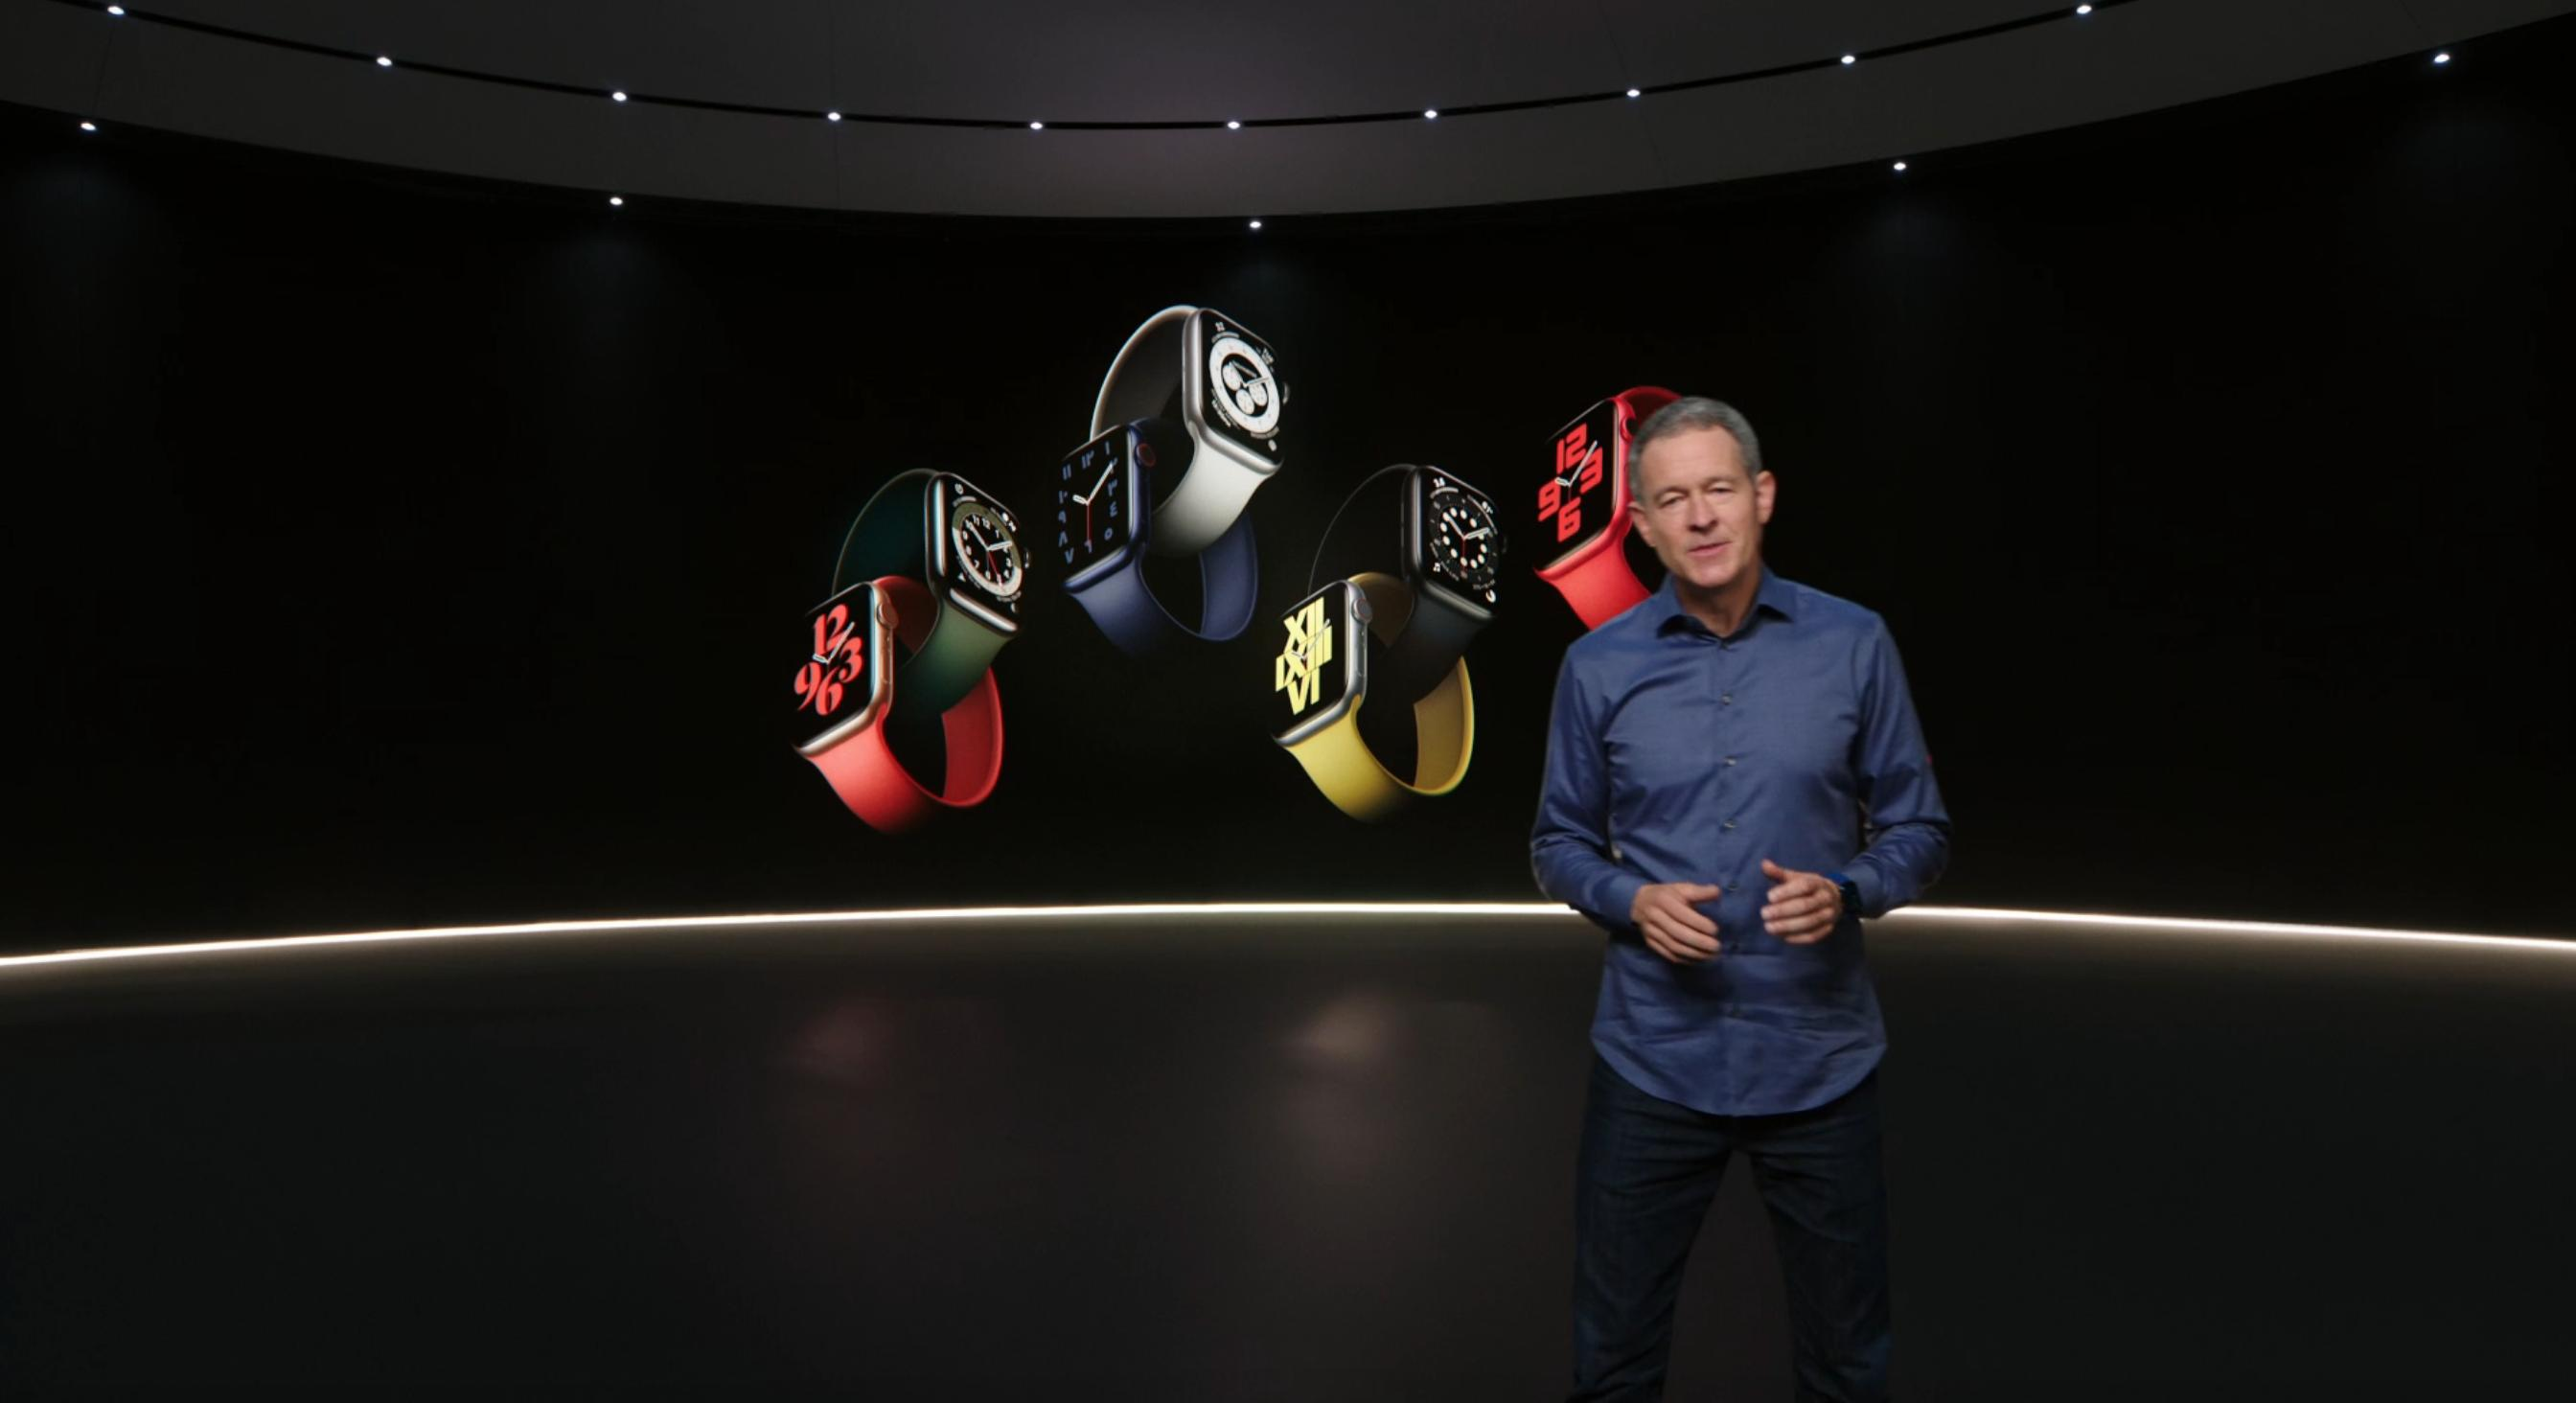 Представлены Apple Watch Series 6 и Watch SE